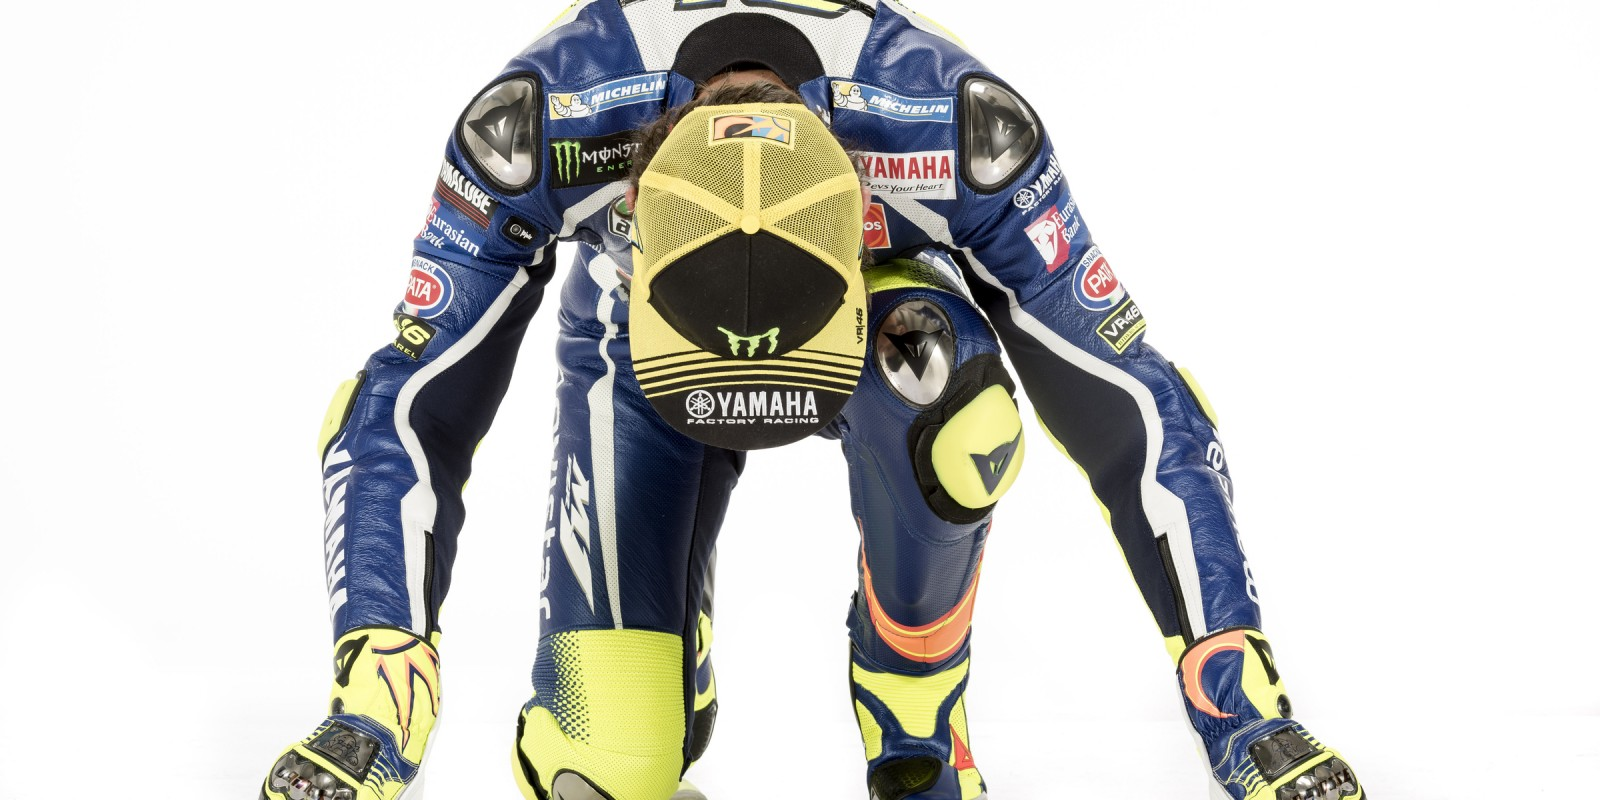 Images of MotoGP legend Valentino Rossi in a pre-season shoot with Yamaha